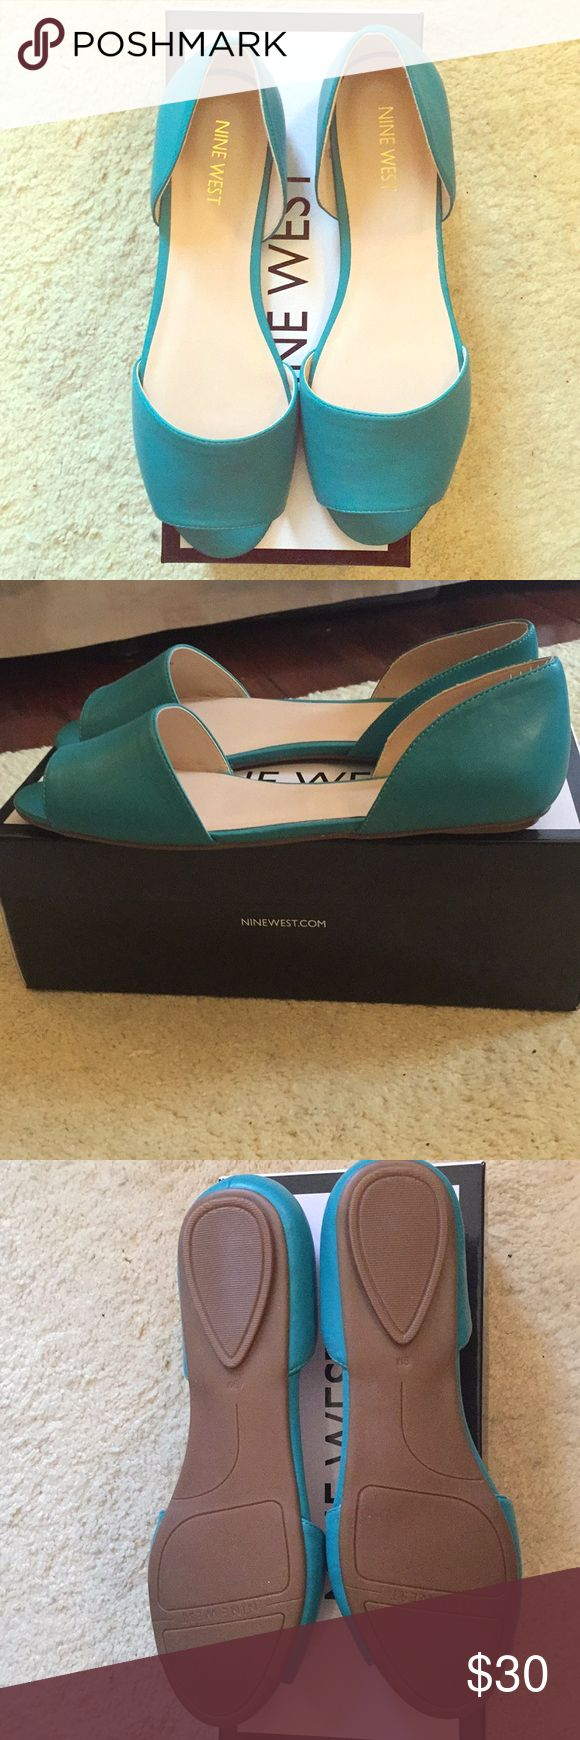 Teal open toe Flats These are brand new open toe flats in a teal color. Size 9m  Nine West shoes Nine West Shoes Sandals